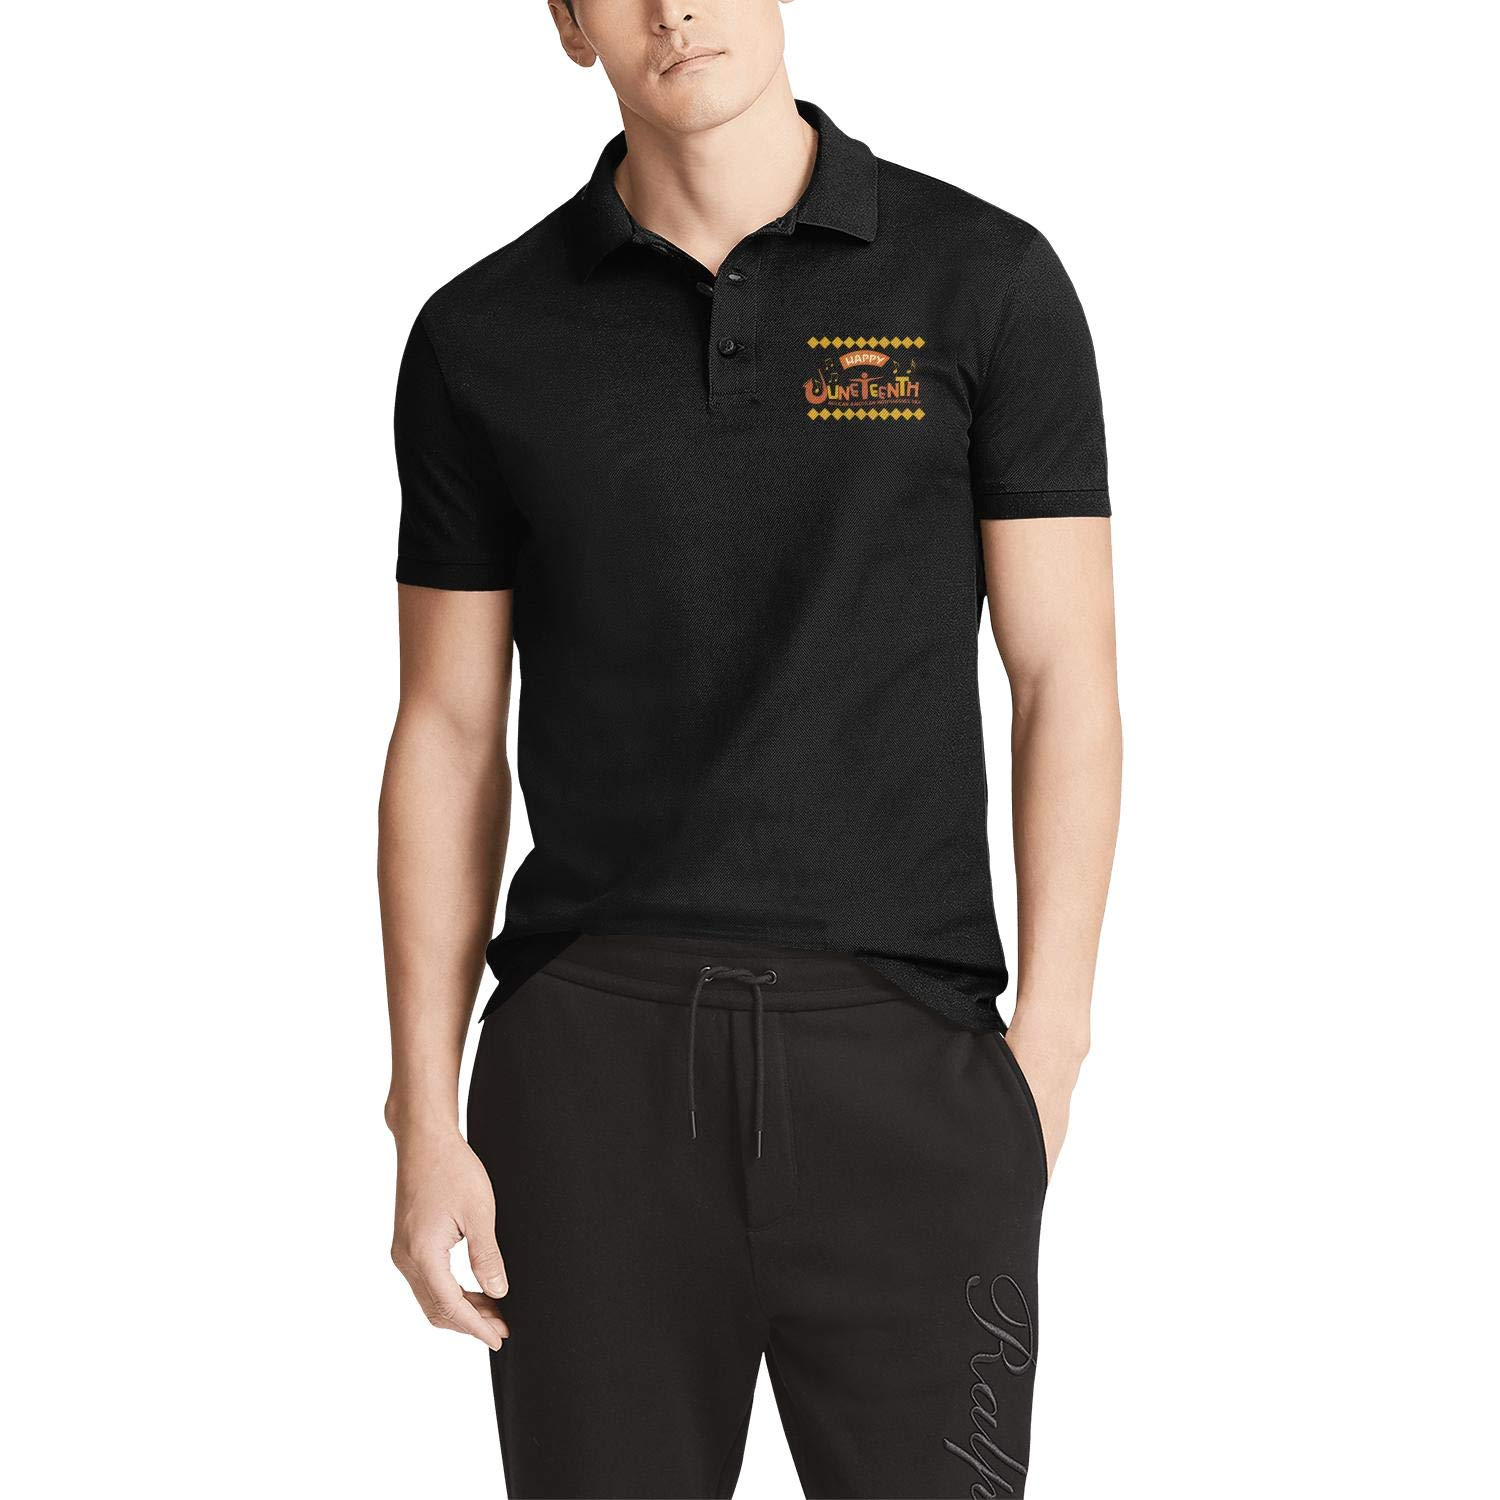 WENL Happy Juneteenth Day Mens Business Funky Polo Shirt